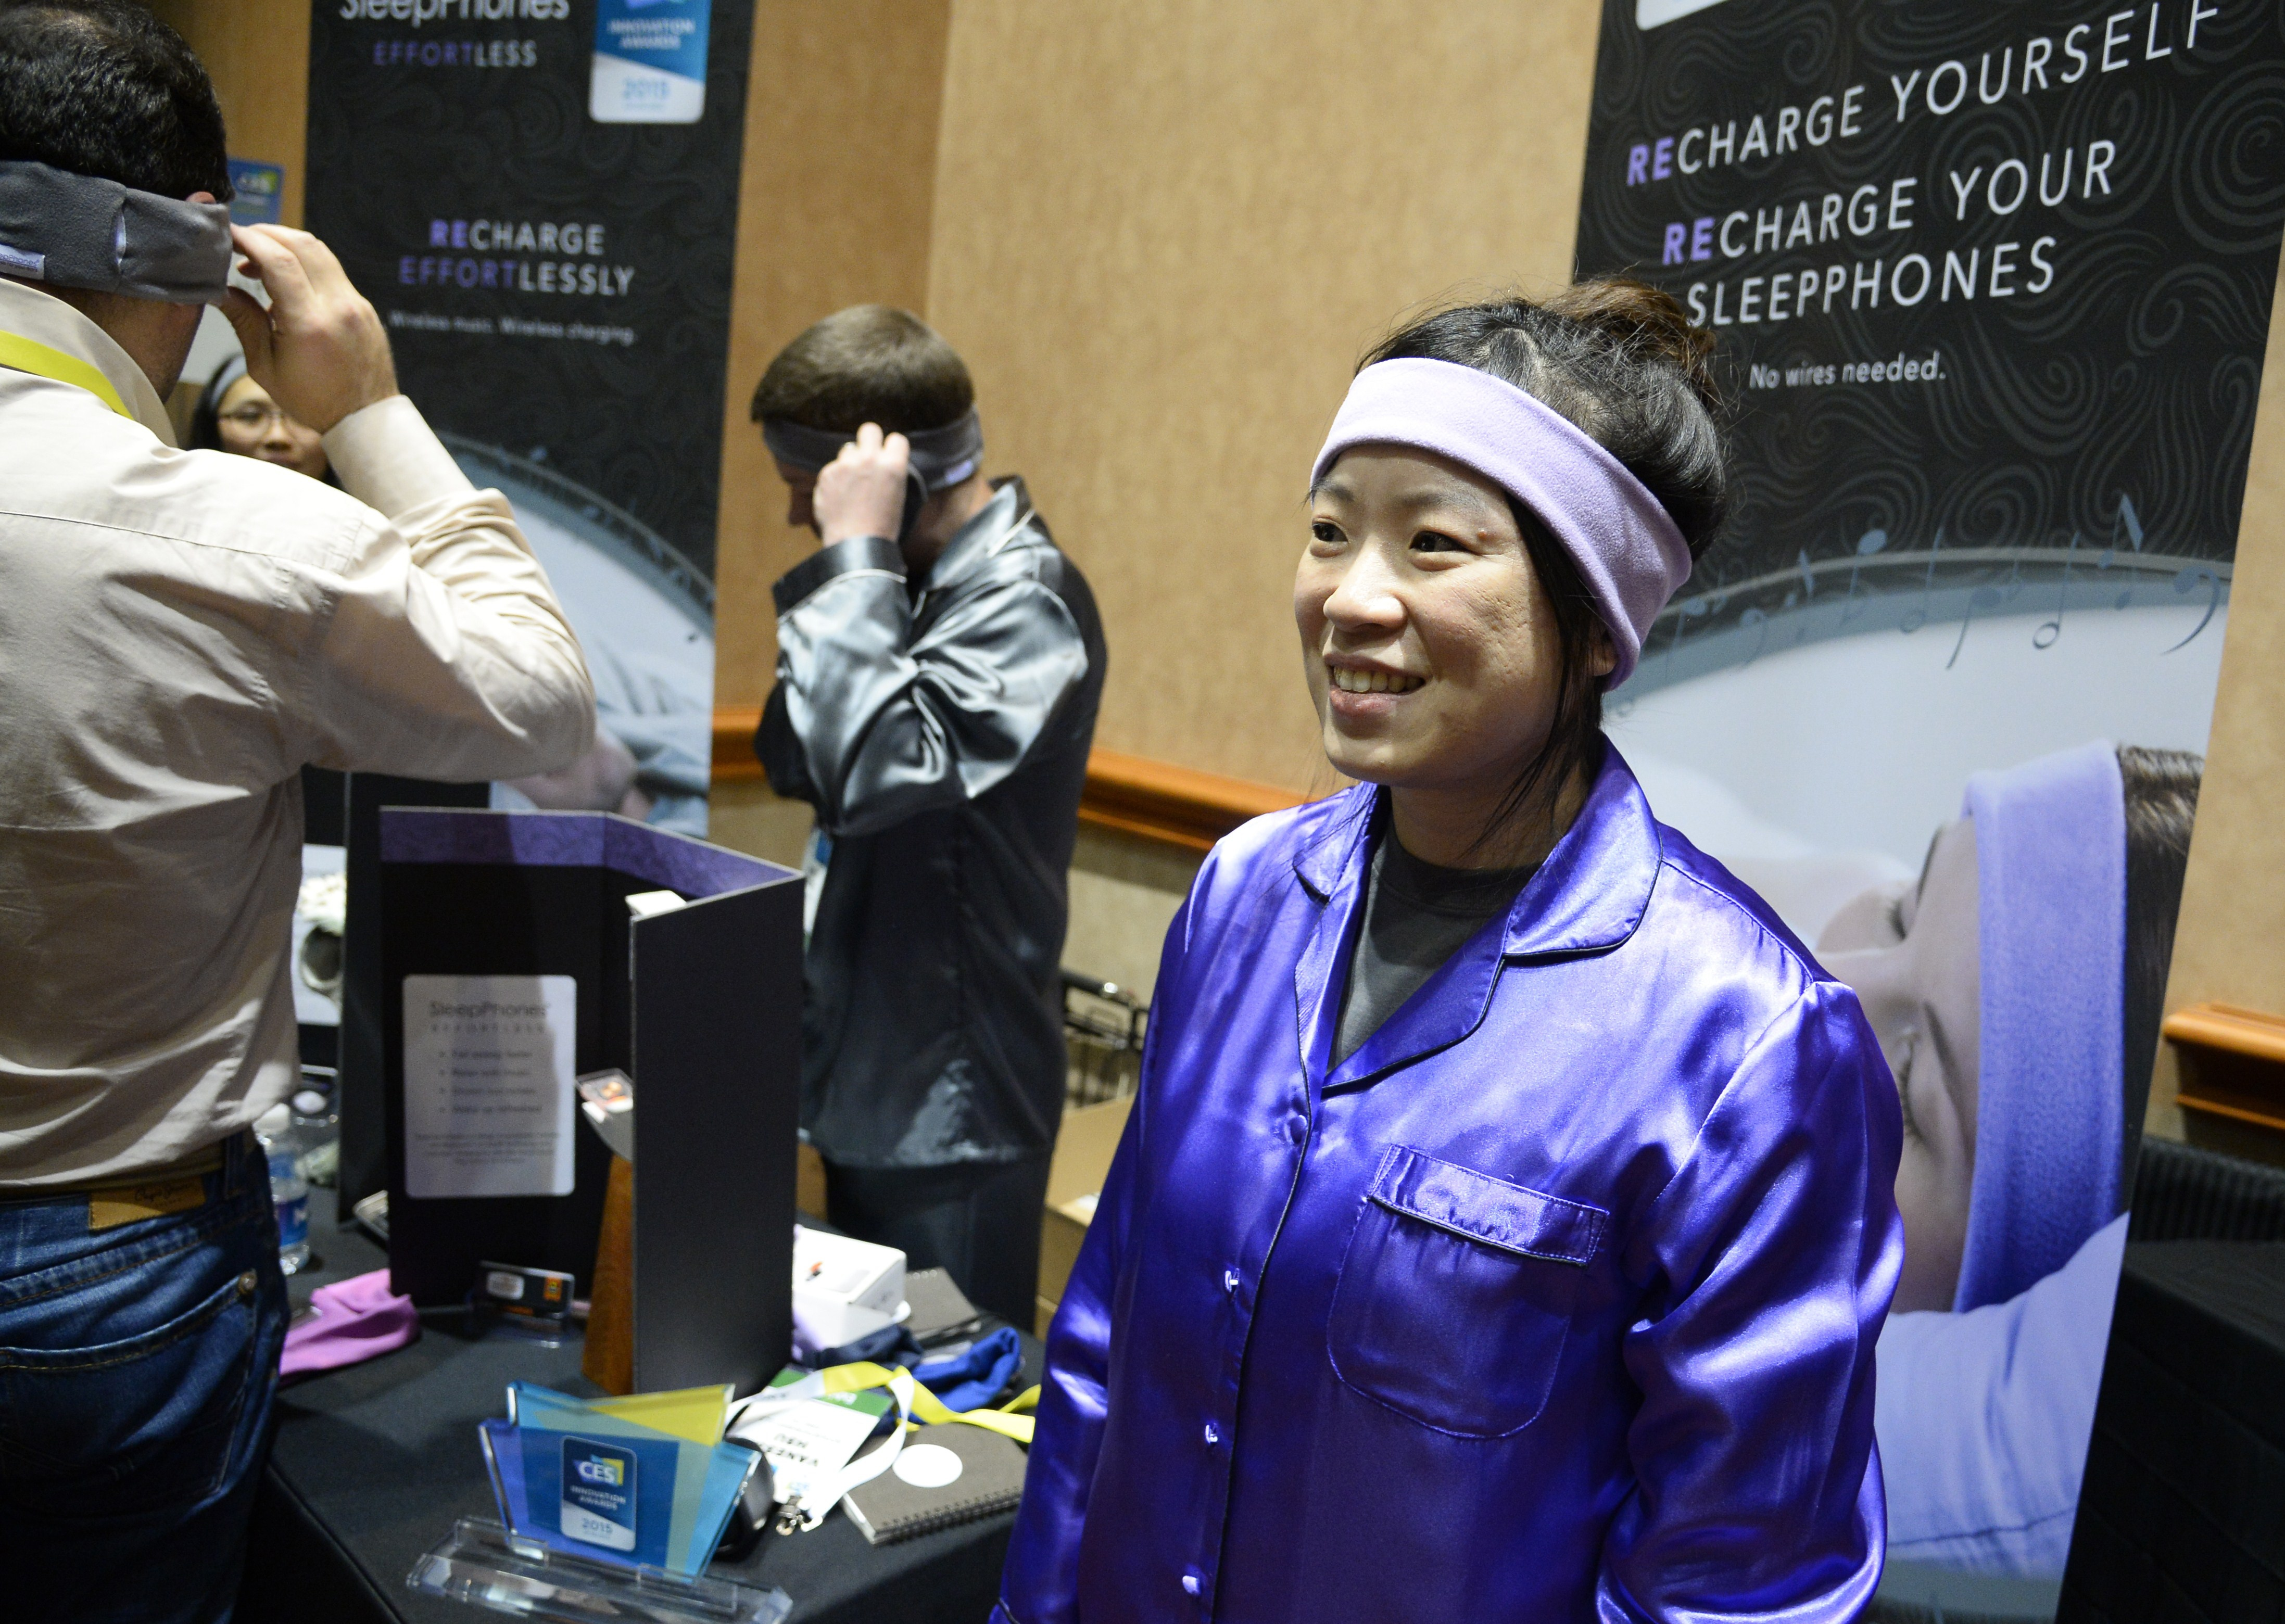 Dressed in pajamas, AcousticSheep LLC representative Venessa Hsu wears SleepPhones, a headband to help people to sleep better, during a press event at the Mandalay Bay Convention Center for the 2015 International CES on Jan. 4, 2015 in Las Vegas, Nevada.